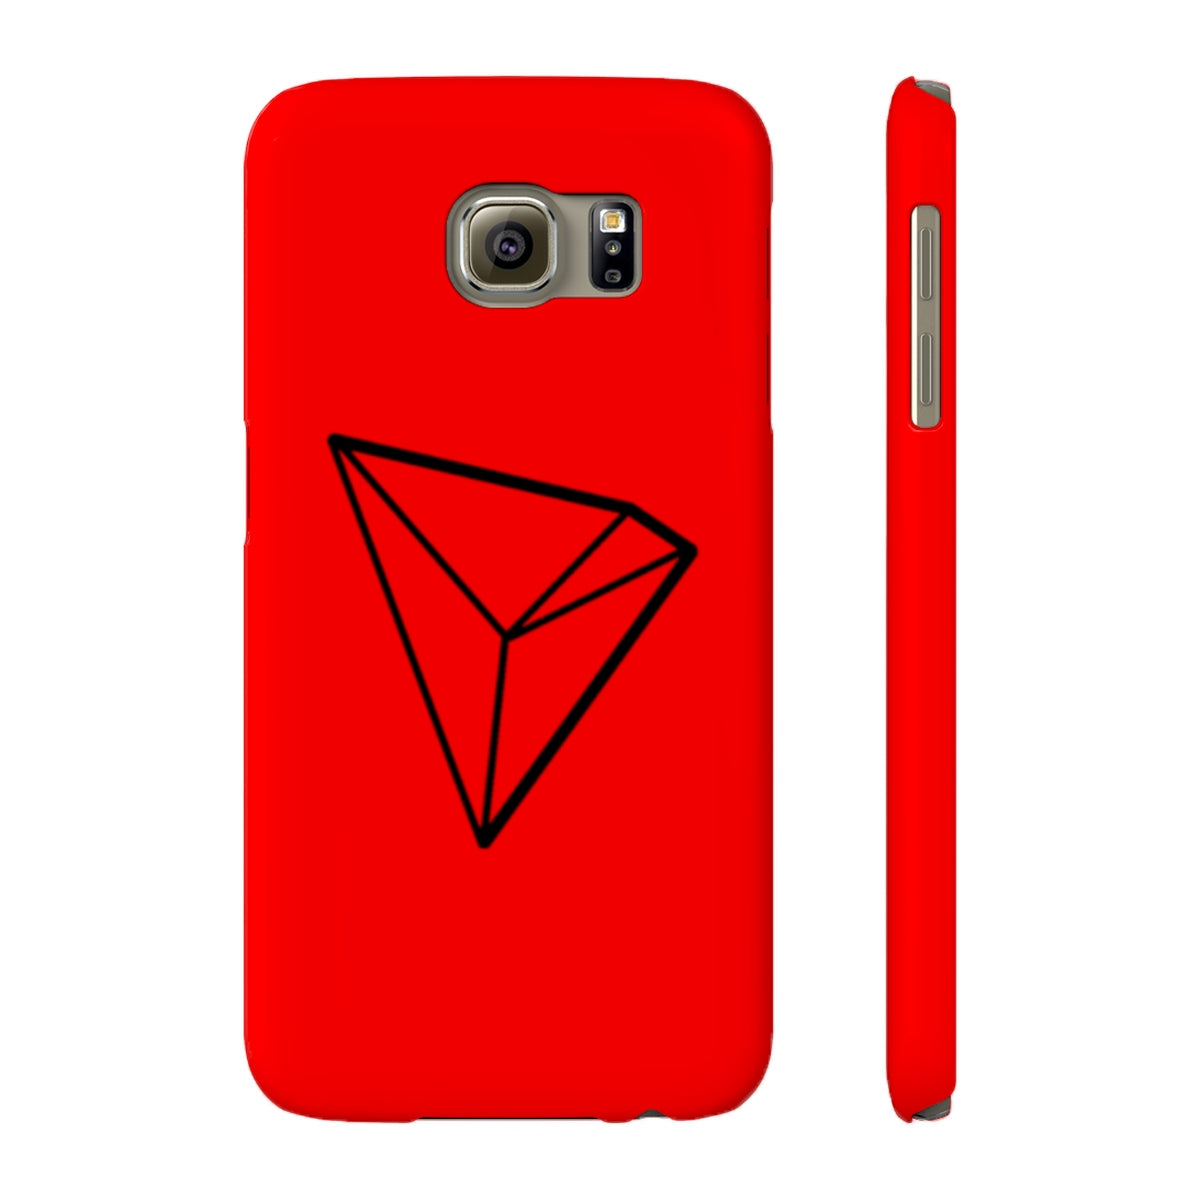 TRON Red Slim